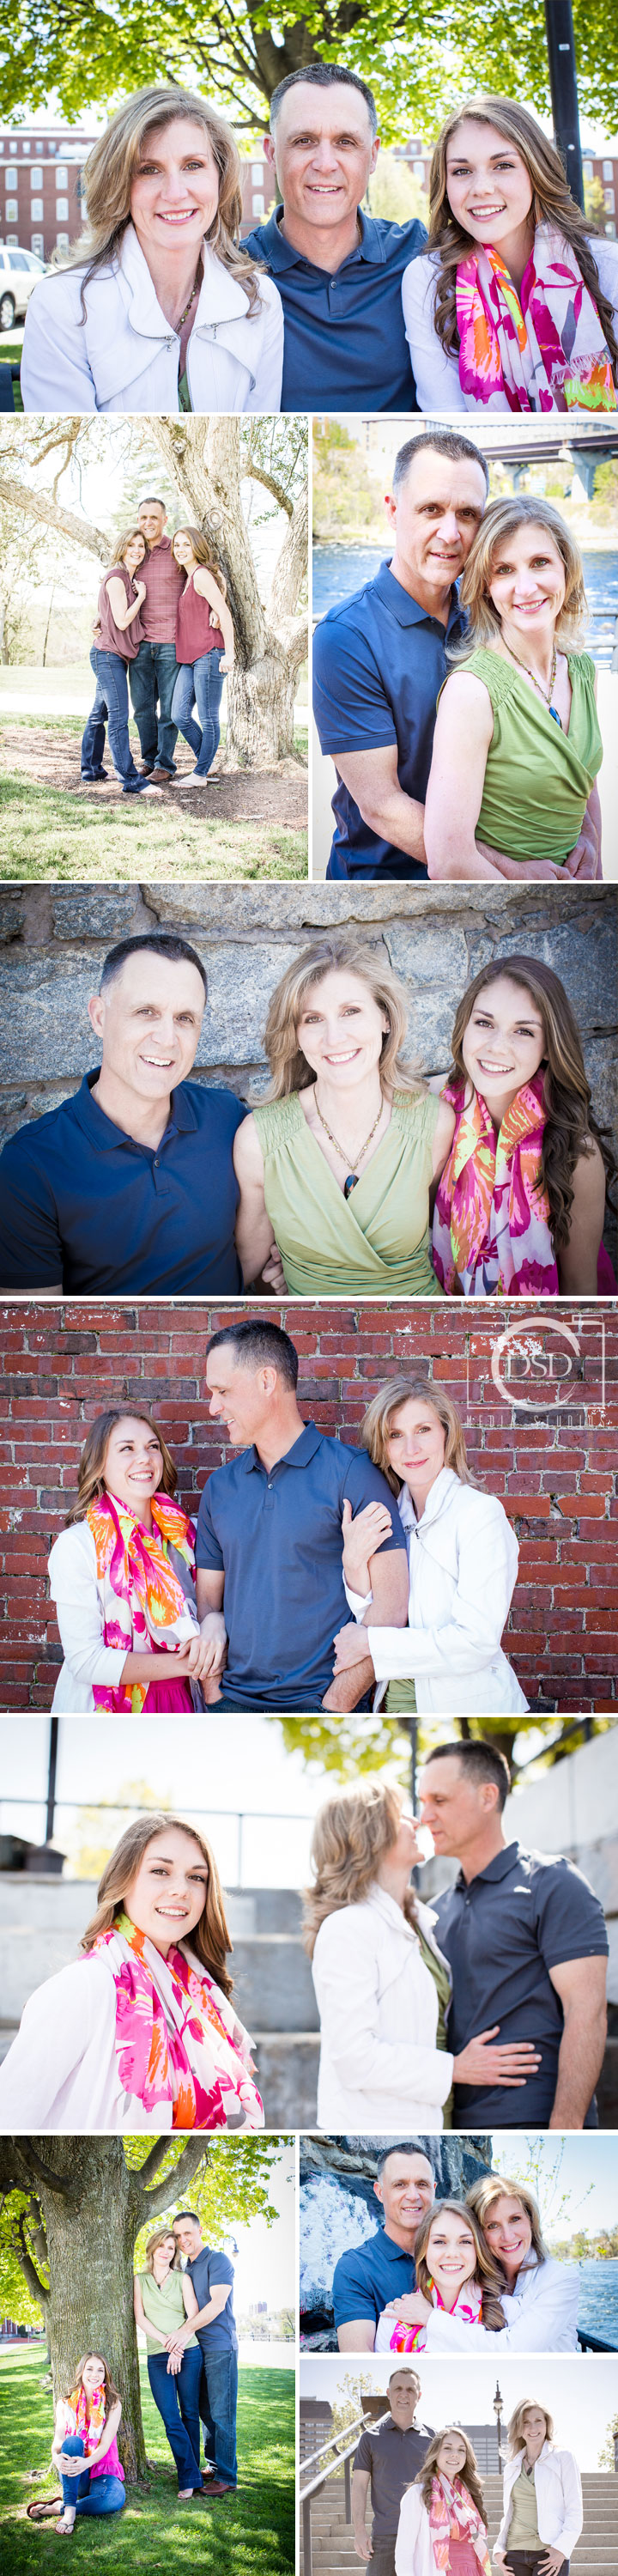 Family session by DSD Media Studios in Manchester NH